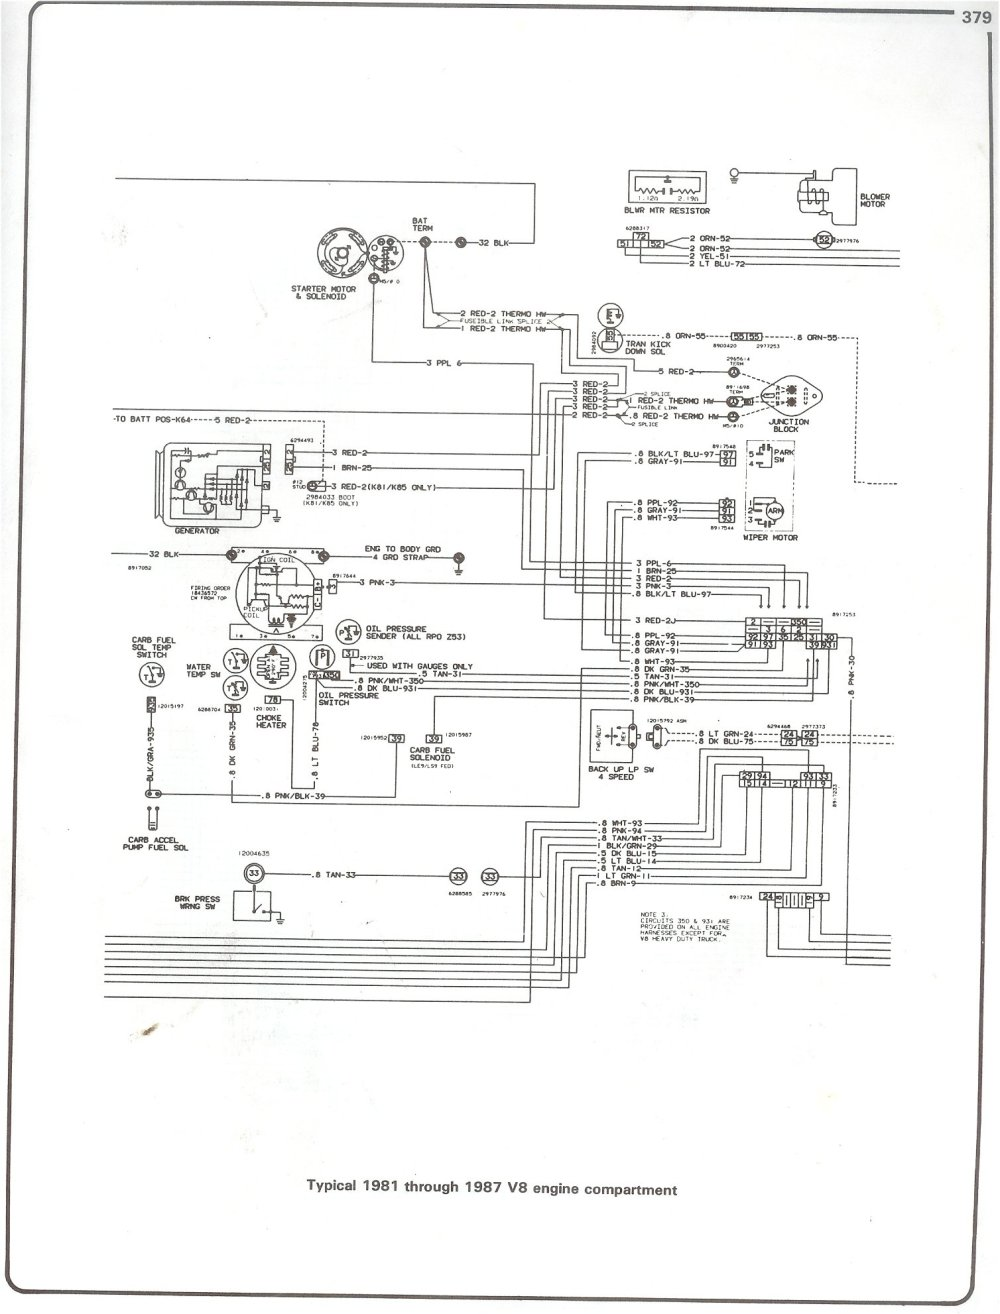 medium resolution of complete 73 87 wiring diagrams 2001 suburban wiring diagram 81 87 v8 engine compartment